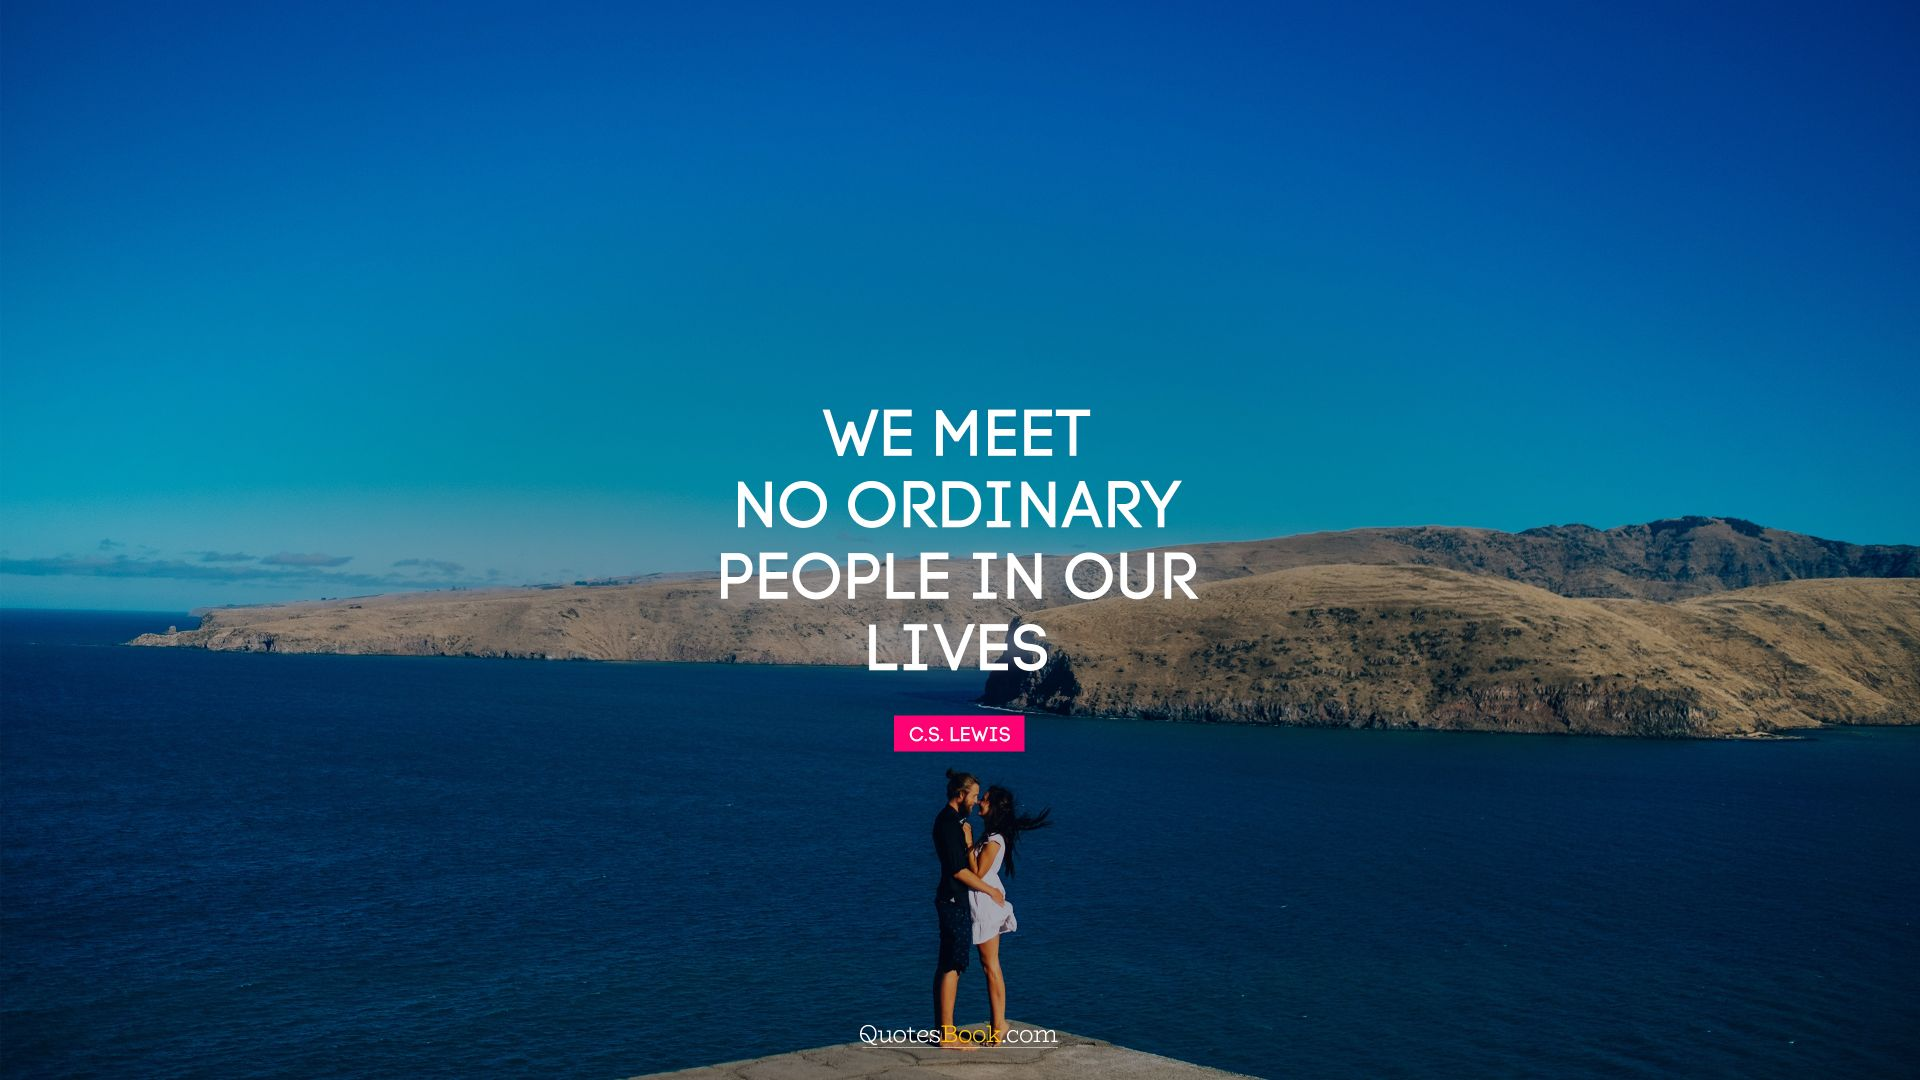 We meet no ordinary people in our lives. - Quote by C. S. Lewis